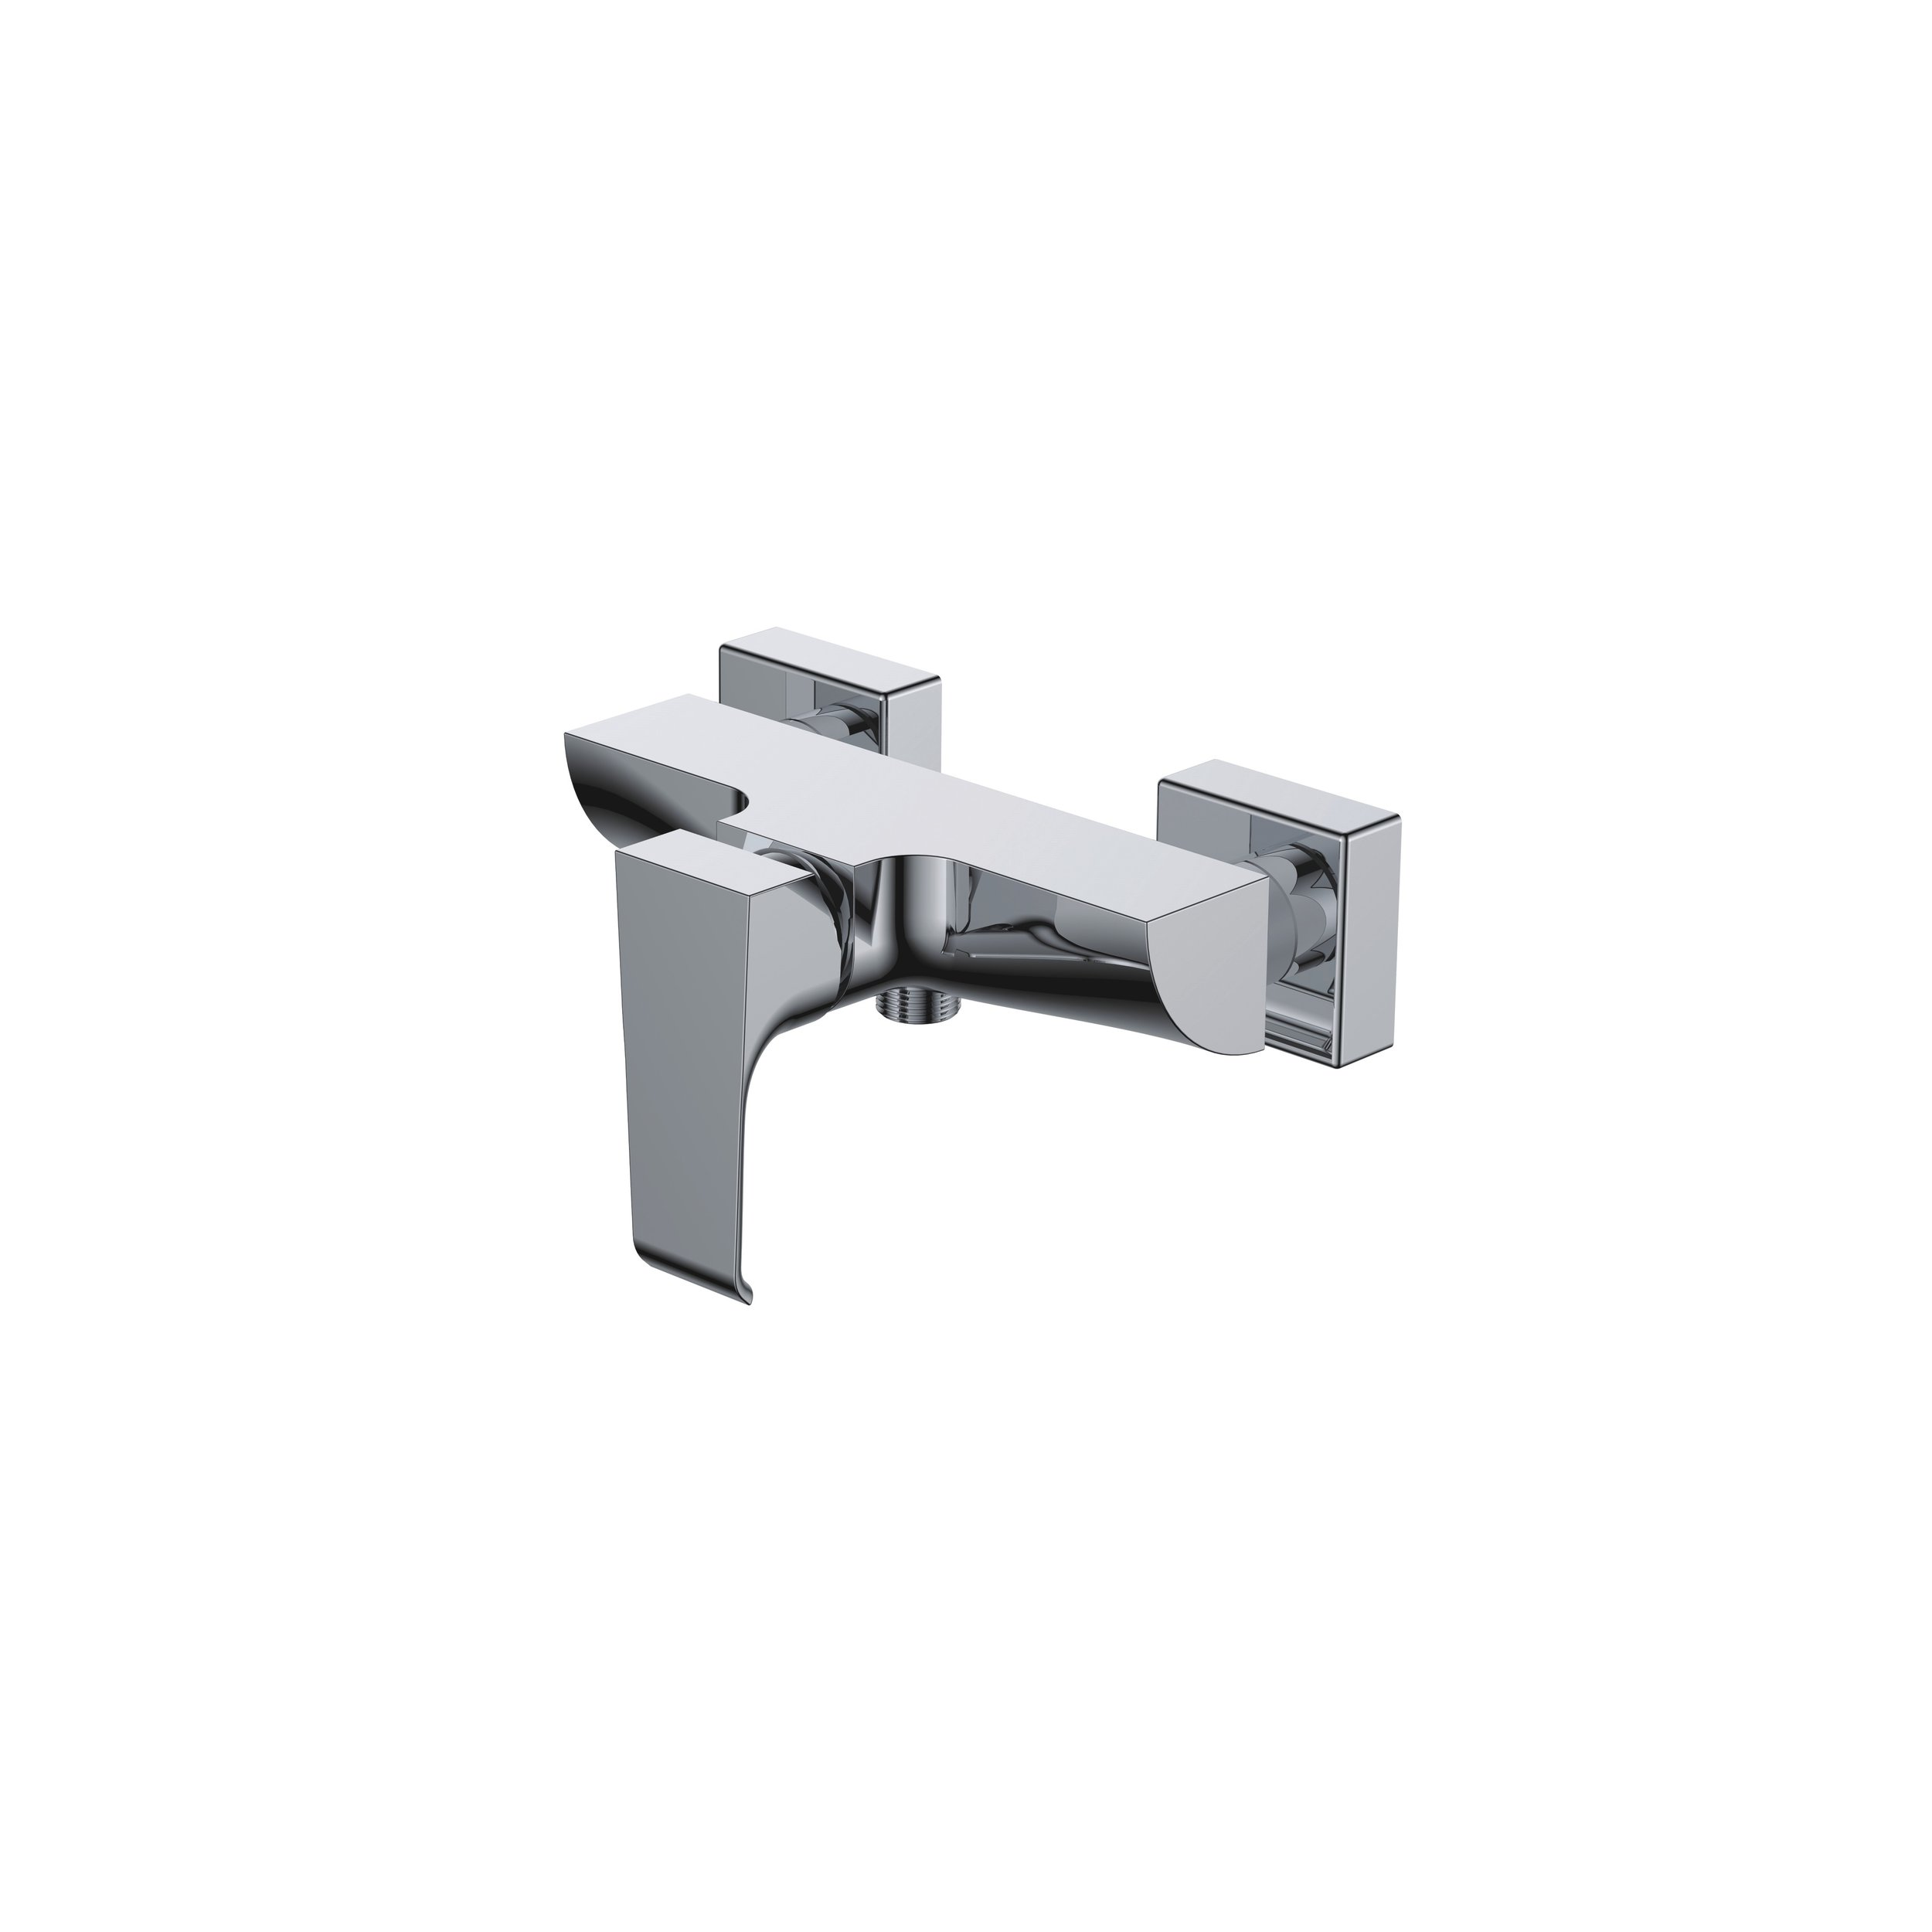 716-103:Wall mounted shower faucet